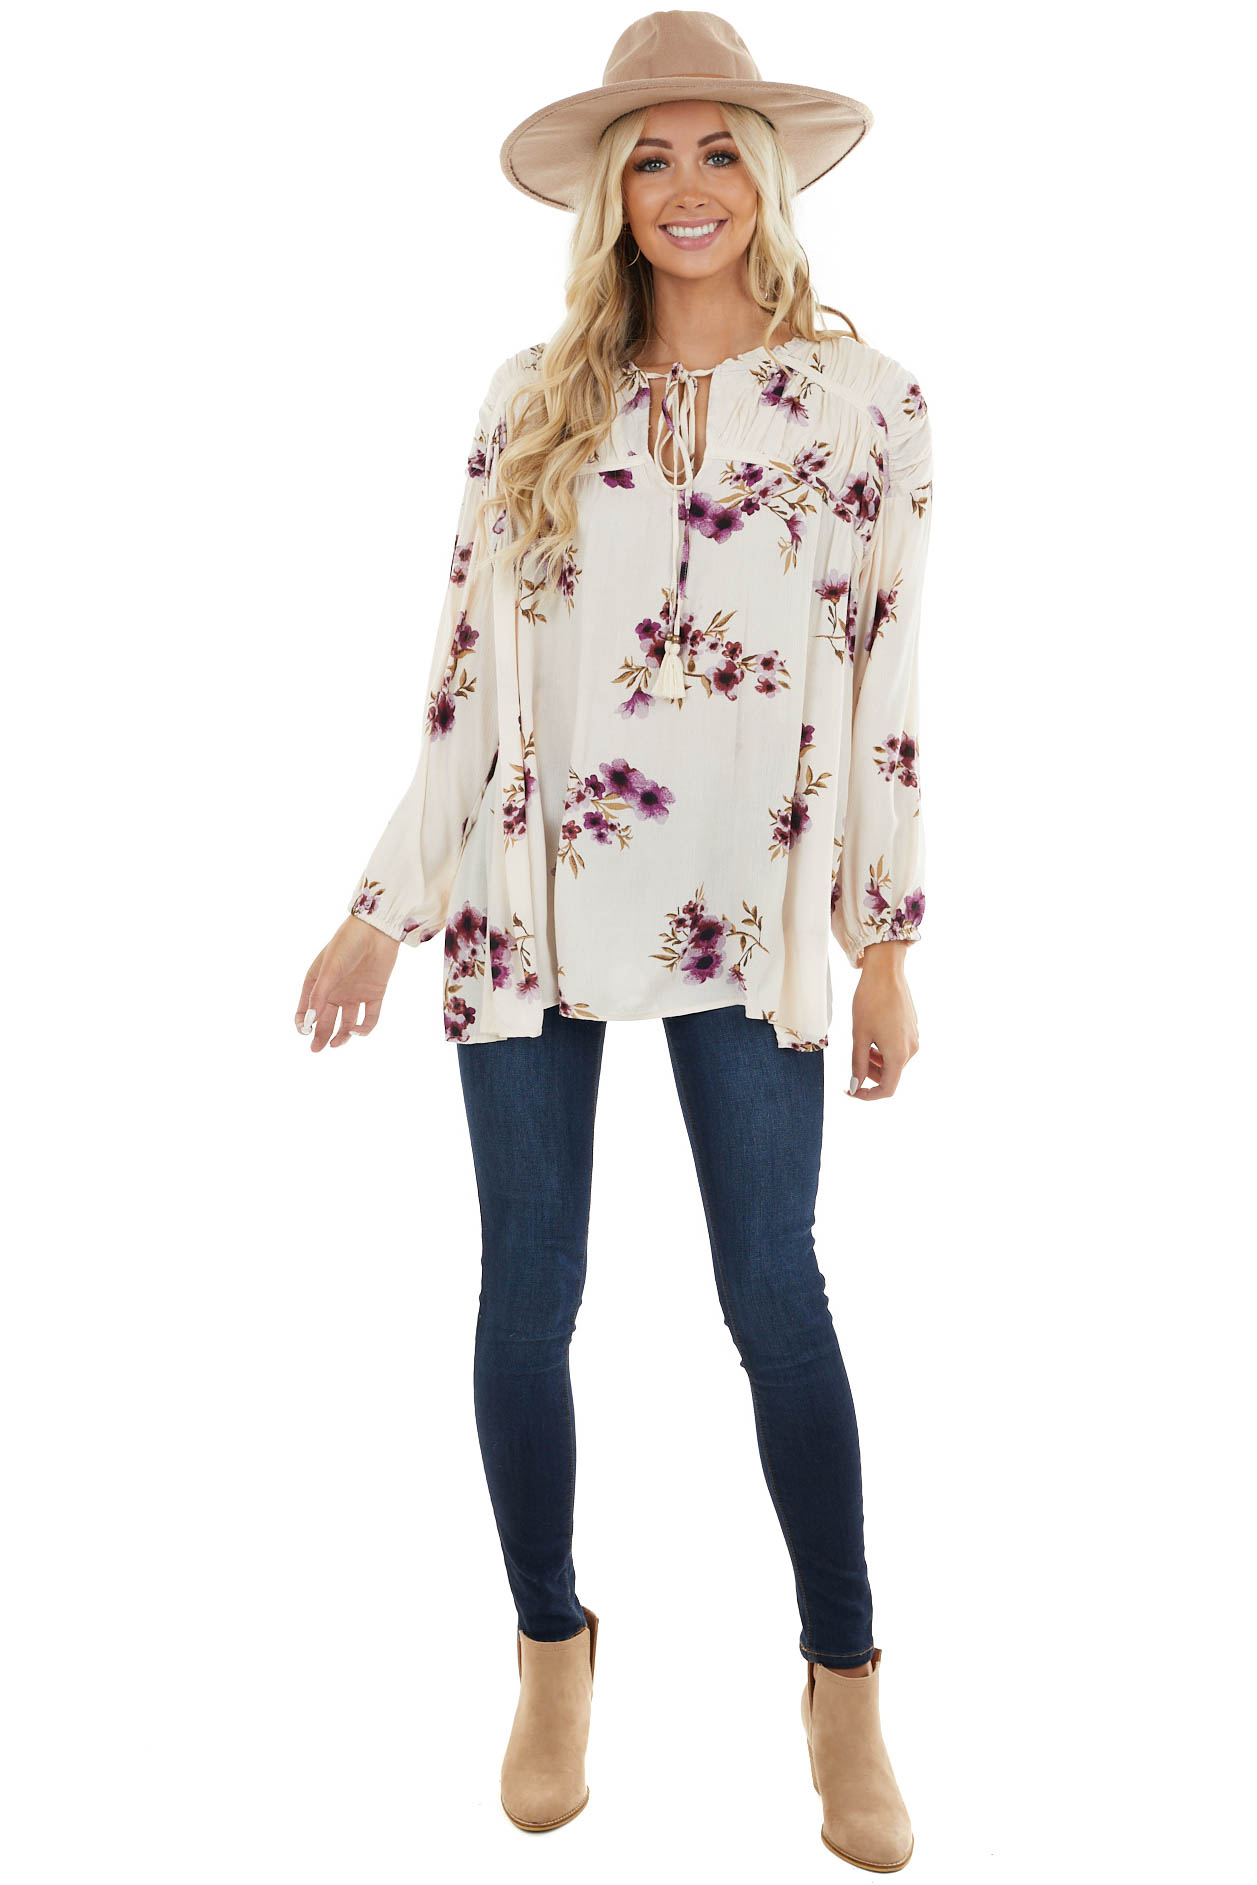 Ivory and Plum Floral Print Blouse with Tie Detail